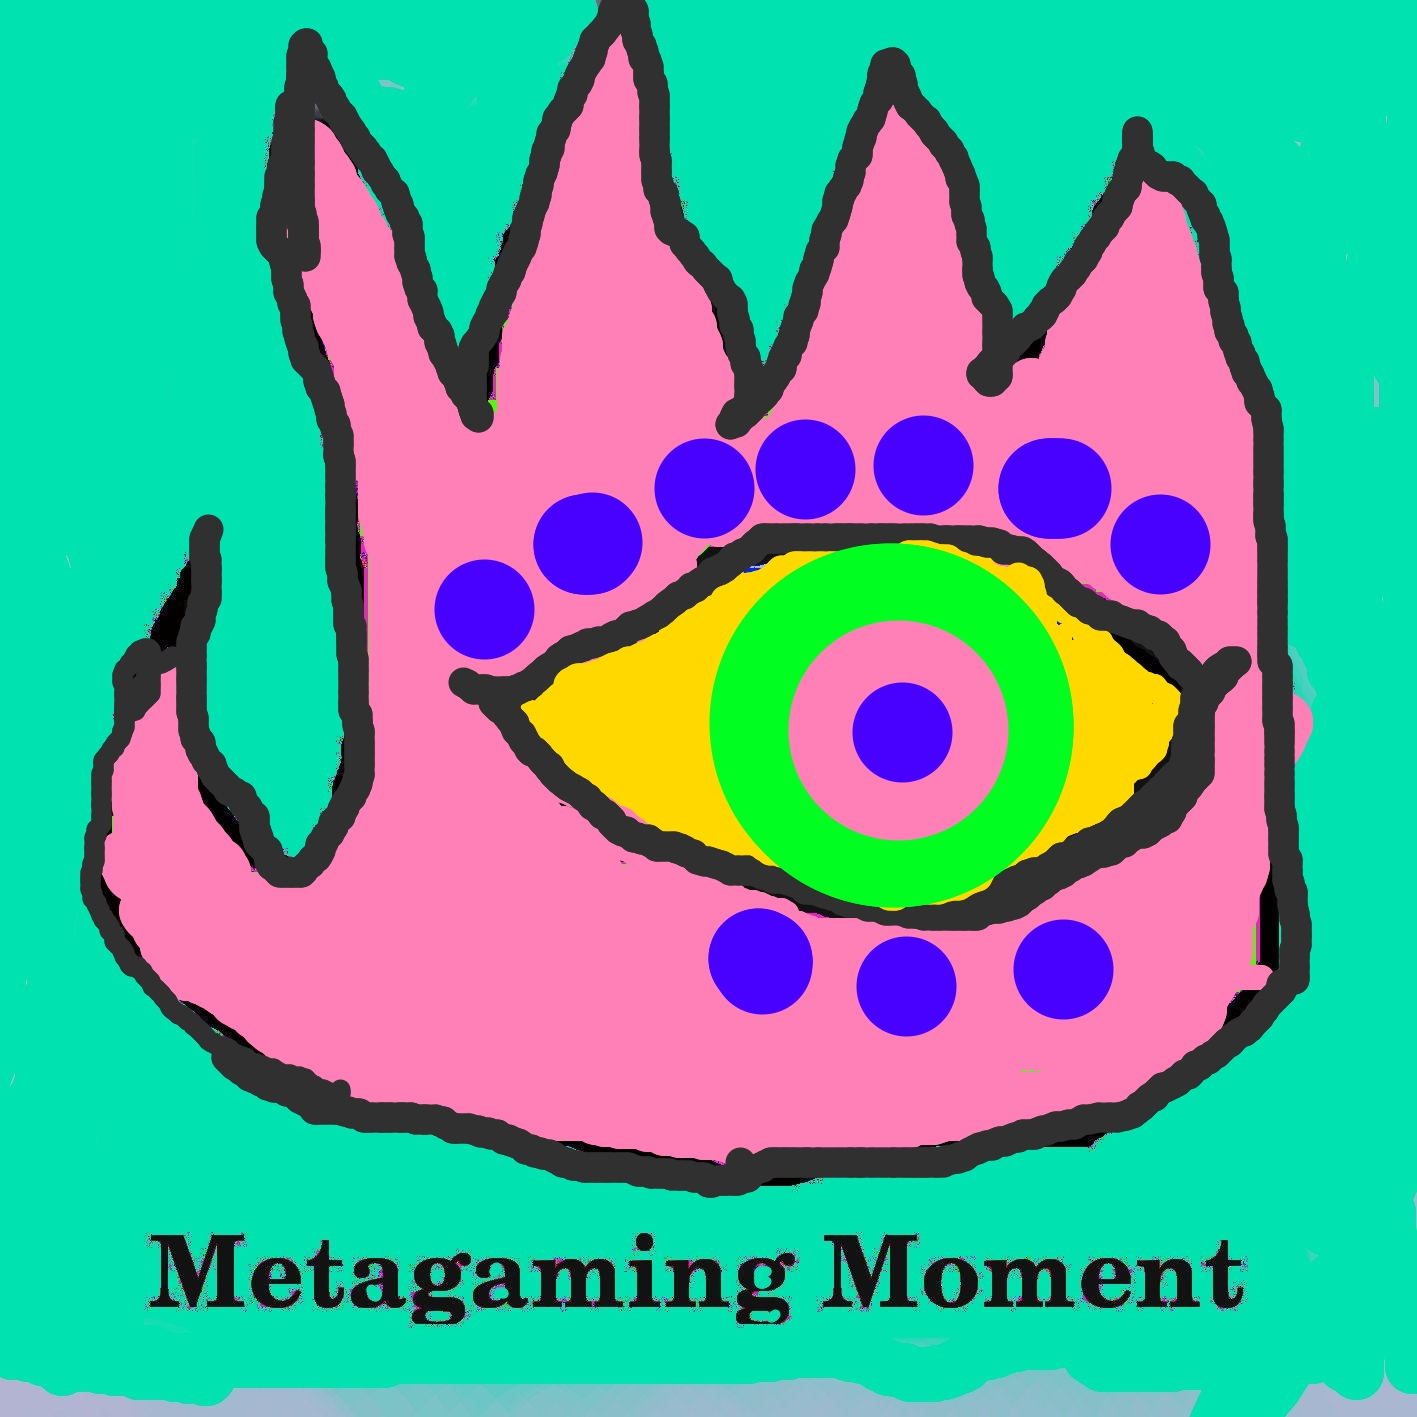 Metagaming Moments XCI - Jeremy Crawfords Rules Resolution on Twitter in April